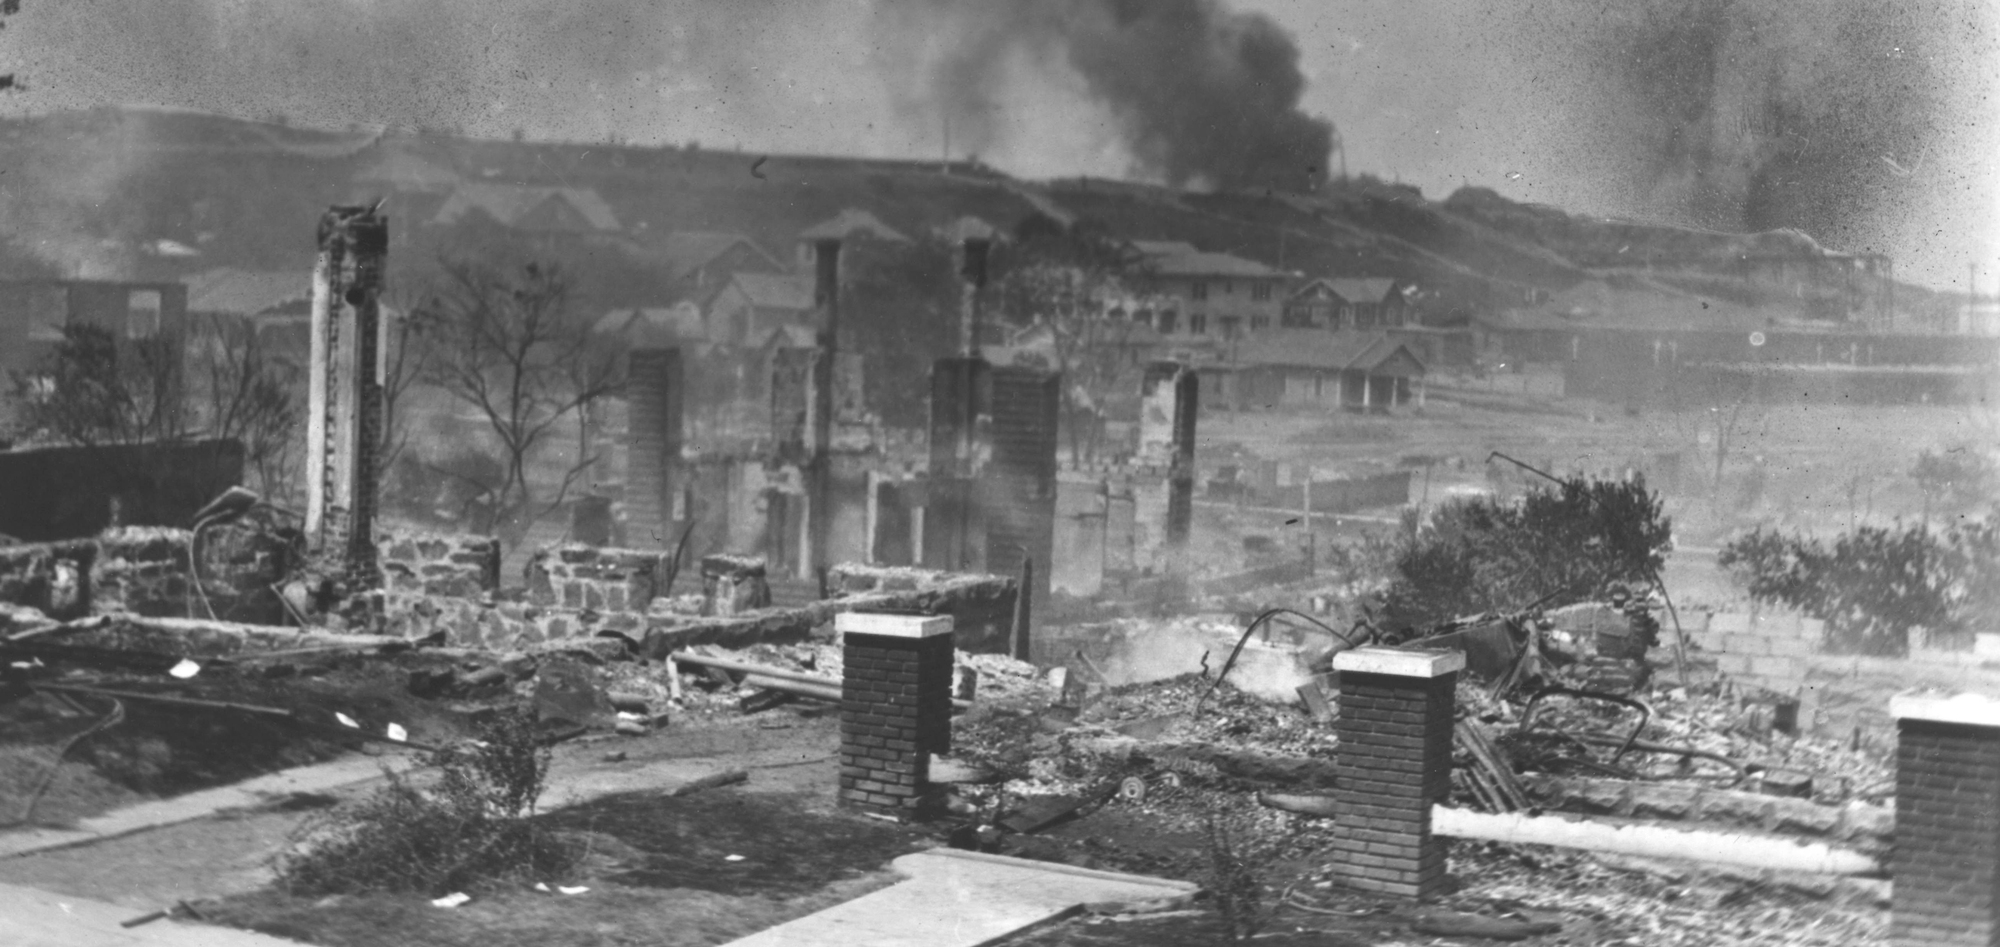 'Goin' Back to T-Town' shows smoldering ruins of homes in Black neighborhood following the racially motivated massacre in Tulsa, Okla., in 1921.